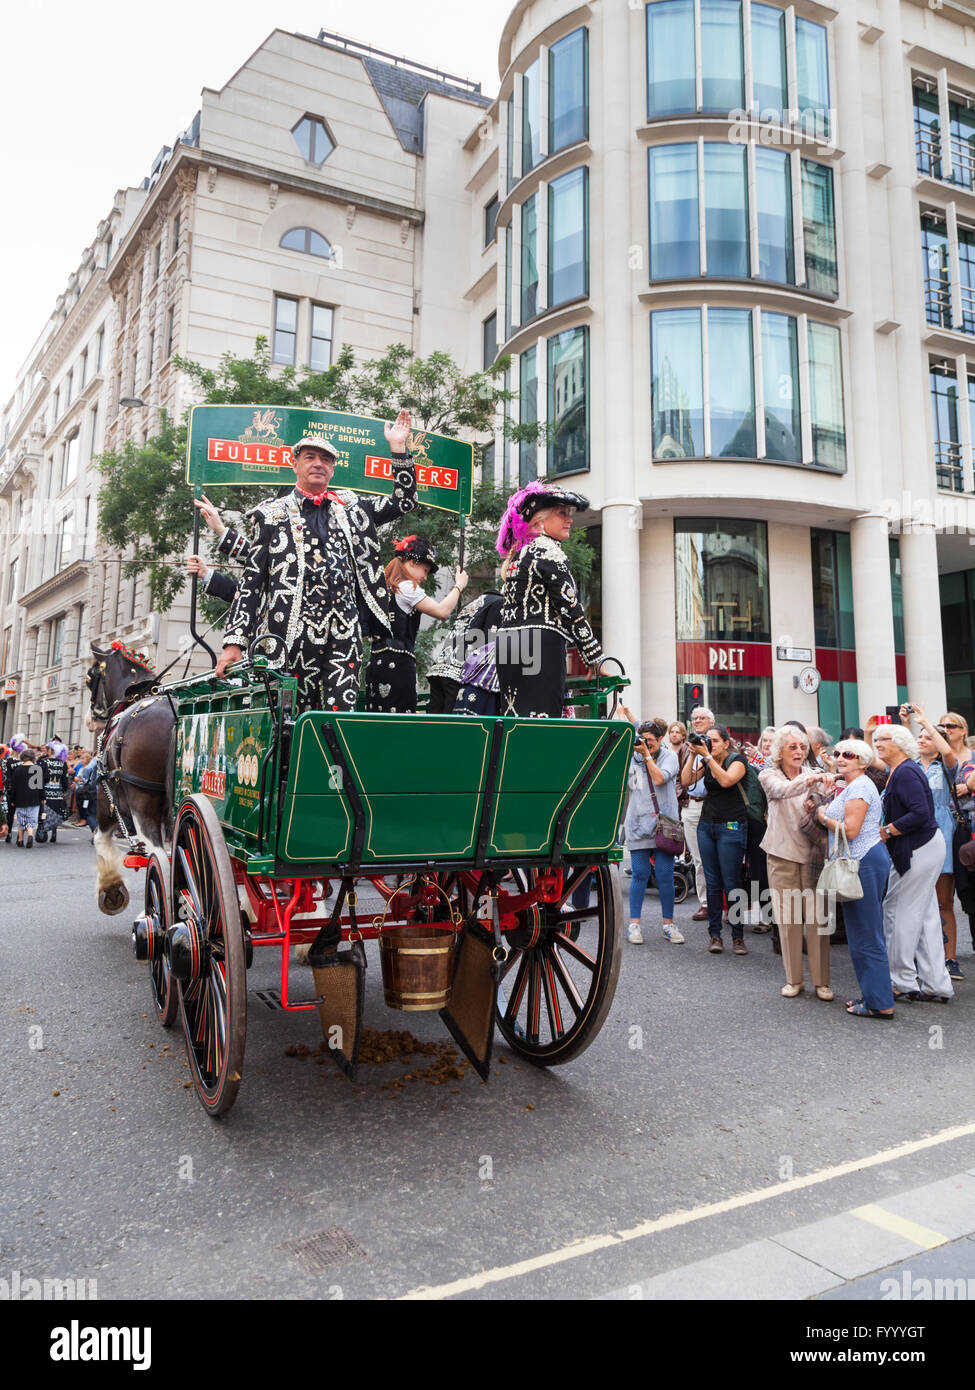 Shaun Austin, Pearly King of Tower Hamlets, waves from an old Fuller's brewery wagon, Pearly Kings and Queens - Stock Image